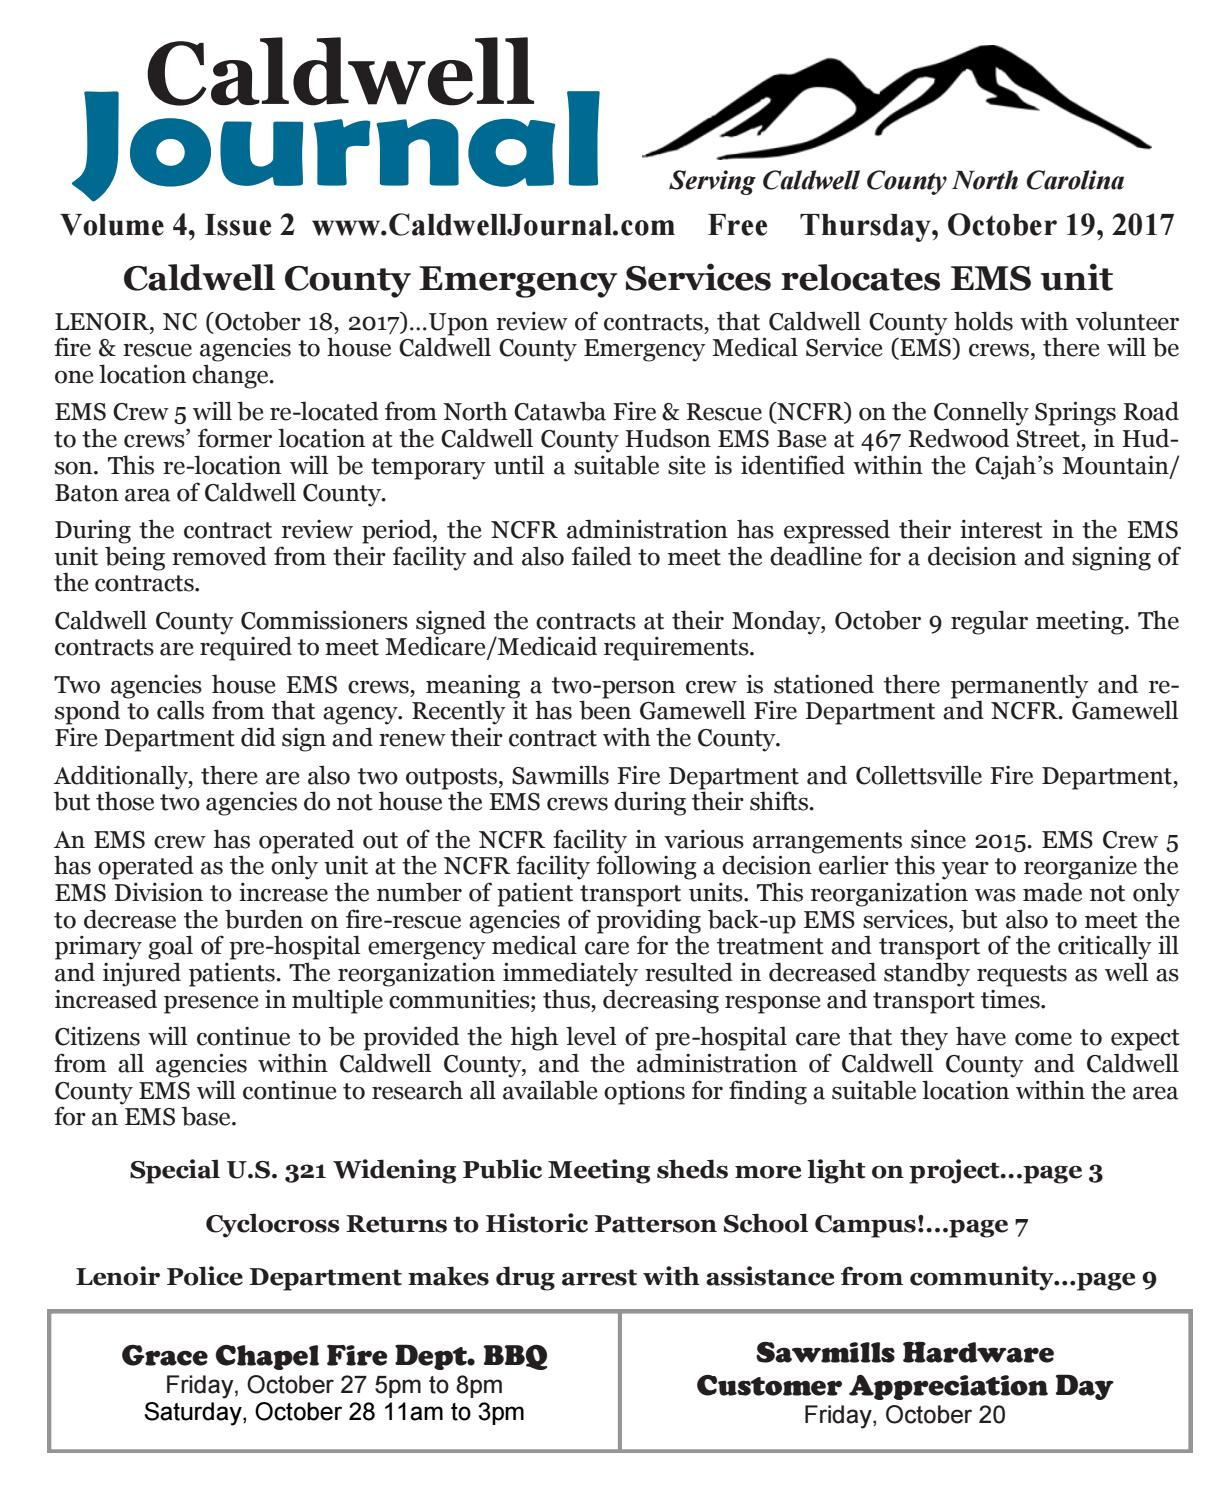 Caldwell Journal 10 19 2017 by Caldwell Journal - issuu